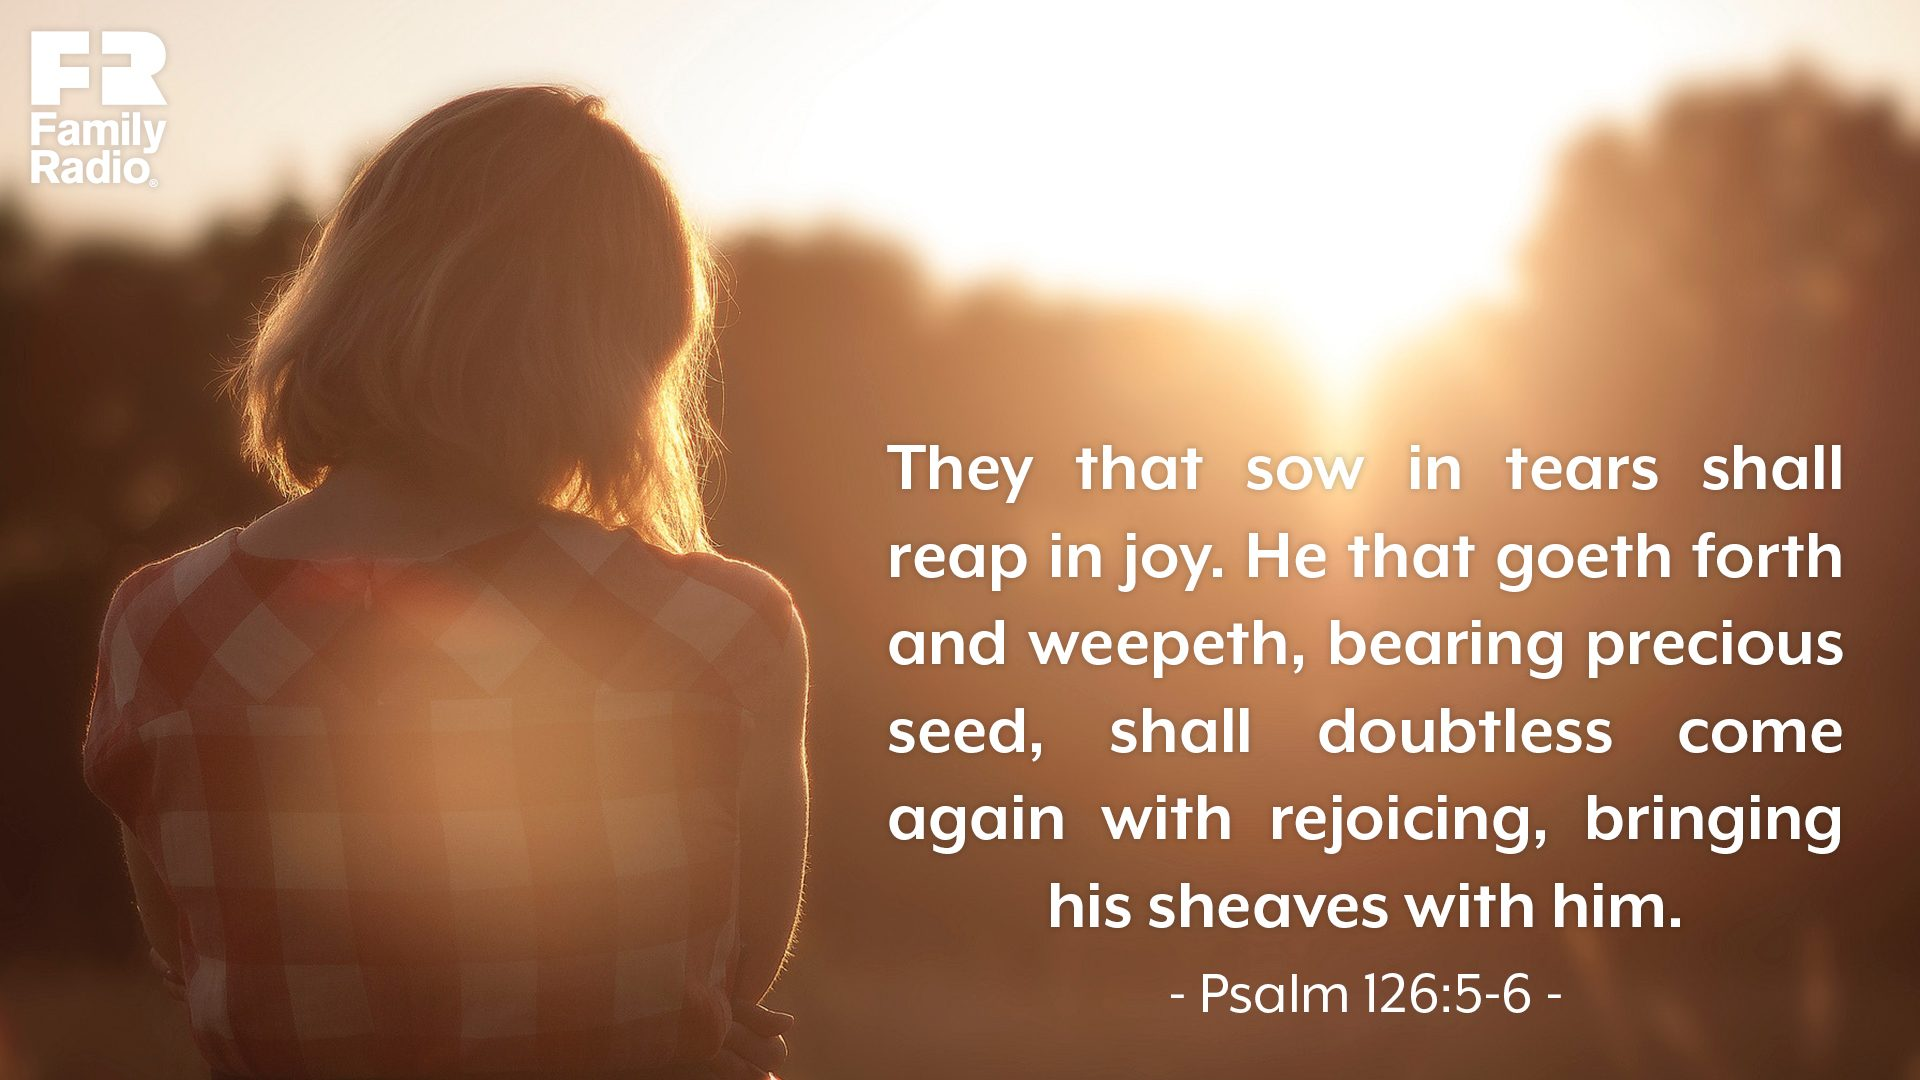 """They that sow in tears shall reap in joy. He that goeth forth and weepeth, bearing precious seed, shall doubtless come again with rejoicing, bringing his sheaves with him."""